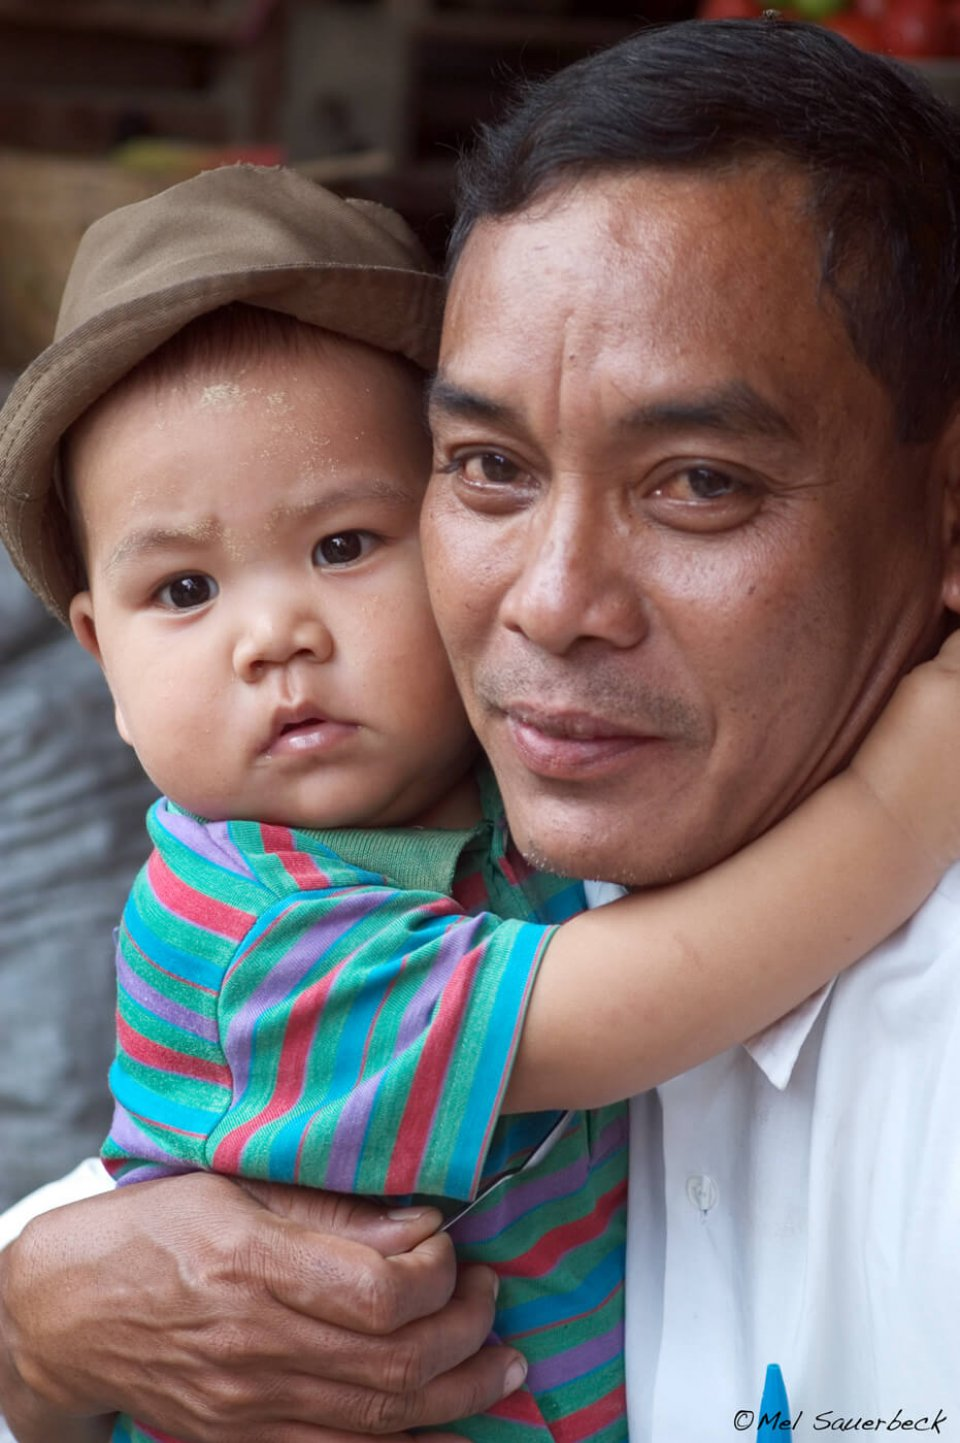 Father and son, Myanmar, Burma